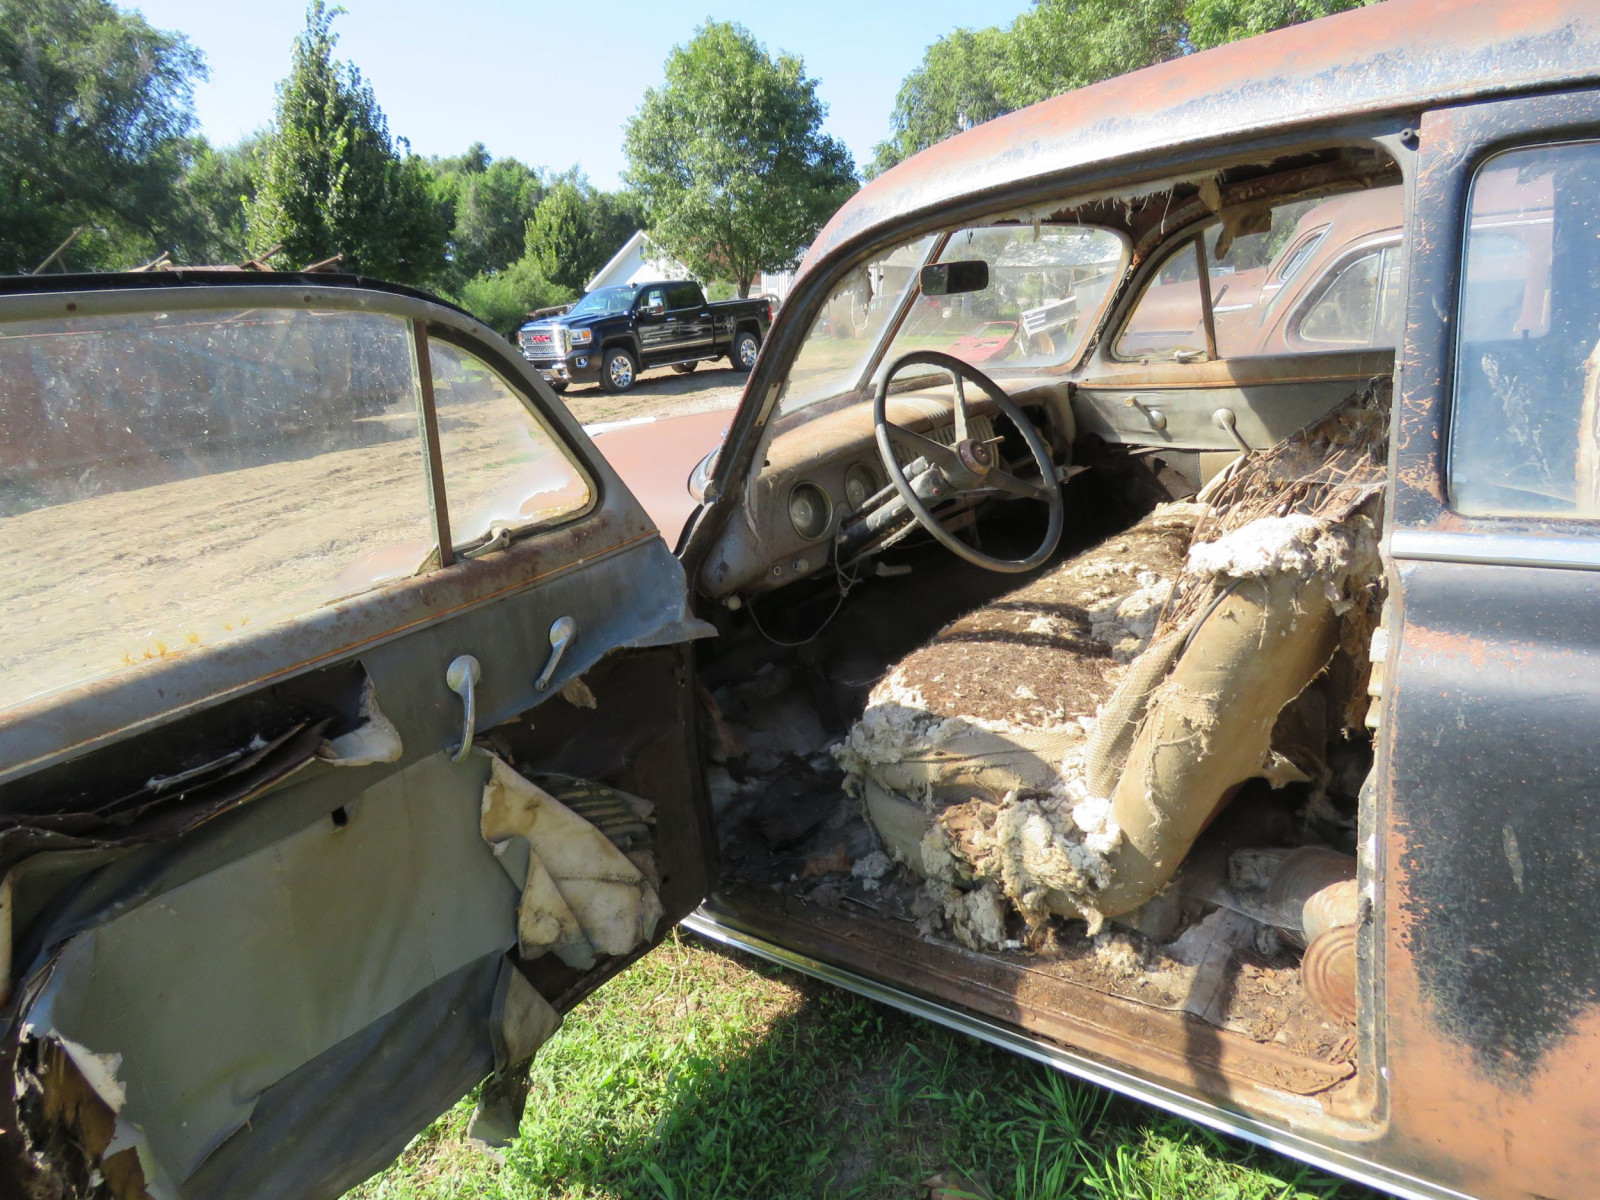 1952 Chevrolet 2dr Sedan for Project or Parts - Image 7